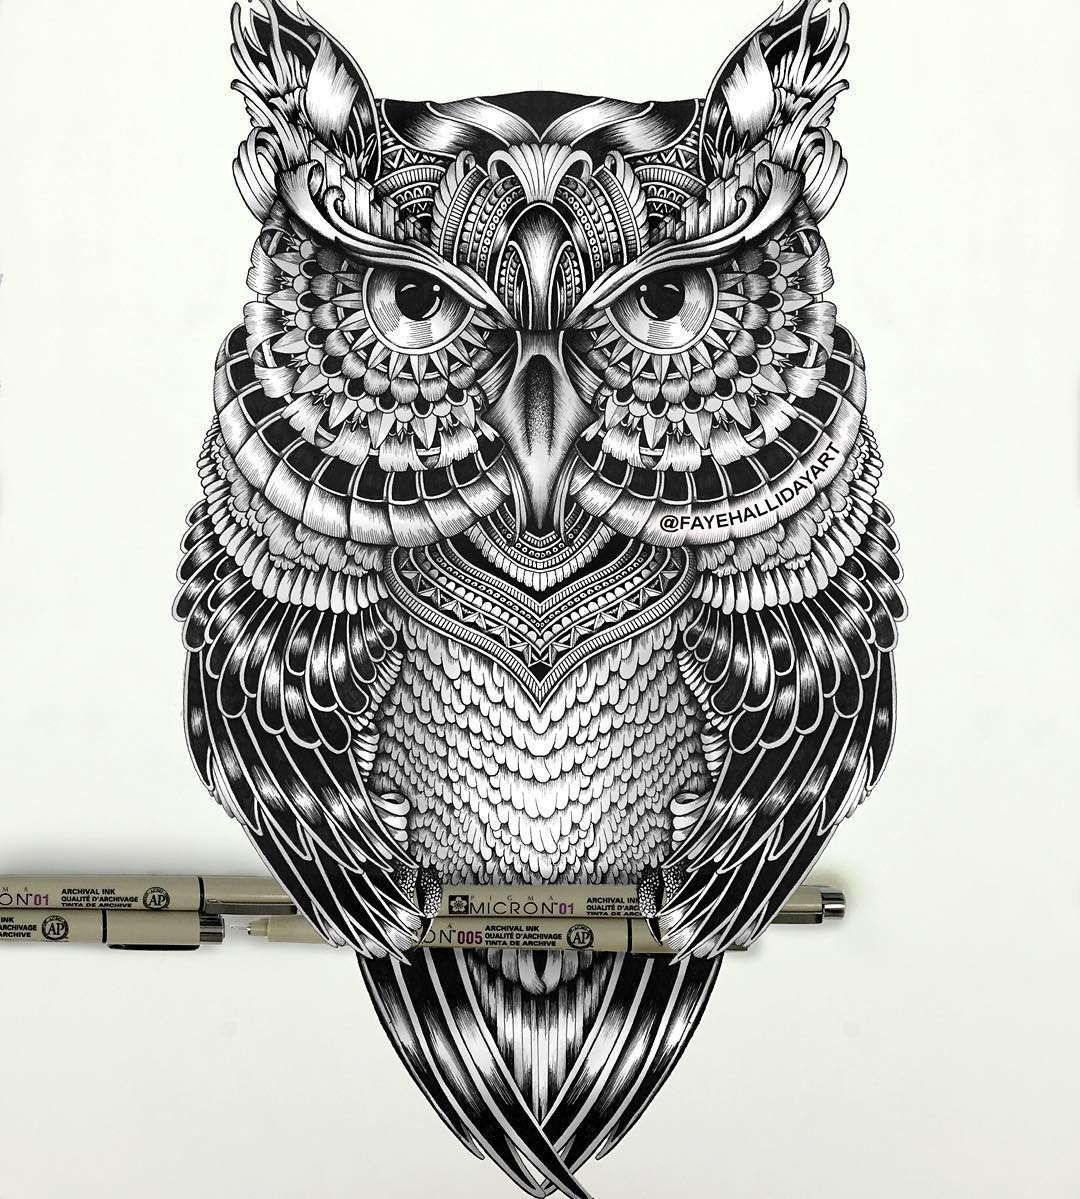 13-Owl-Faye-Halliday-Haathi-Detailed-Drawings-Representing-Complex-Animal-www-designstack-co